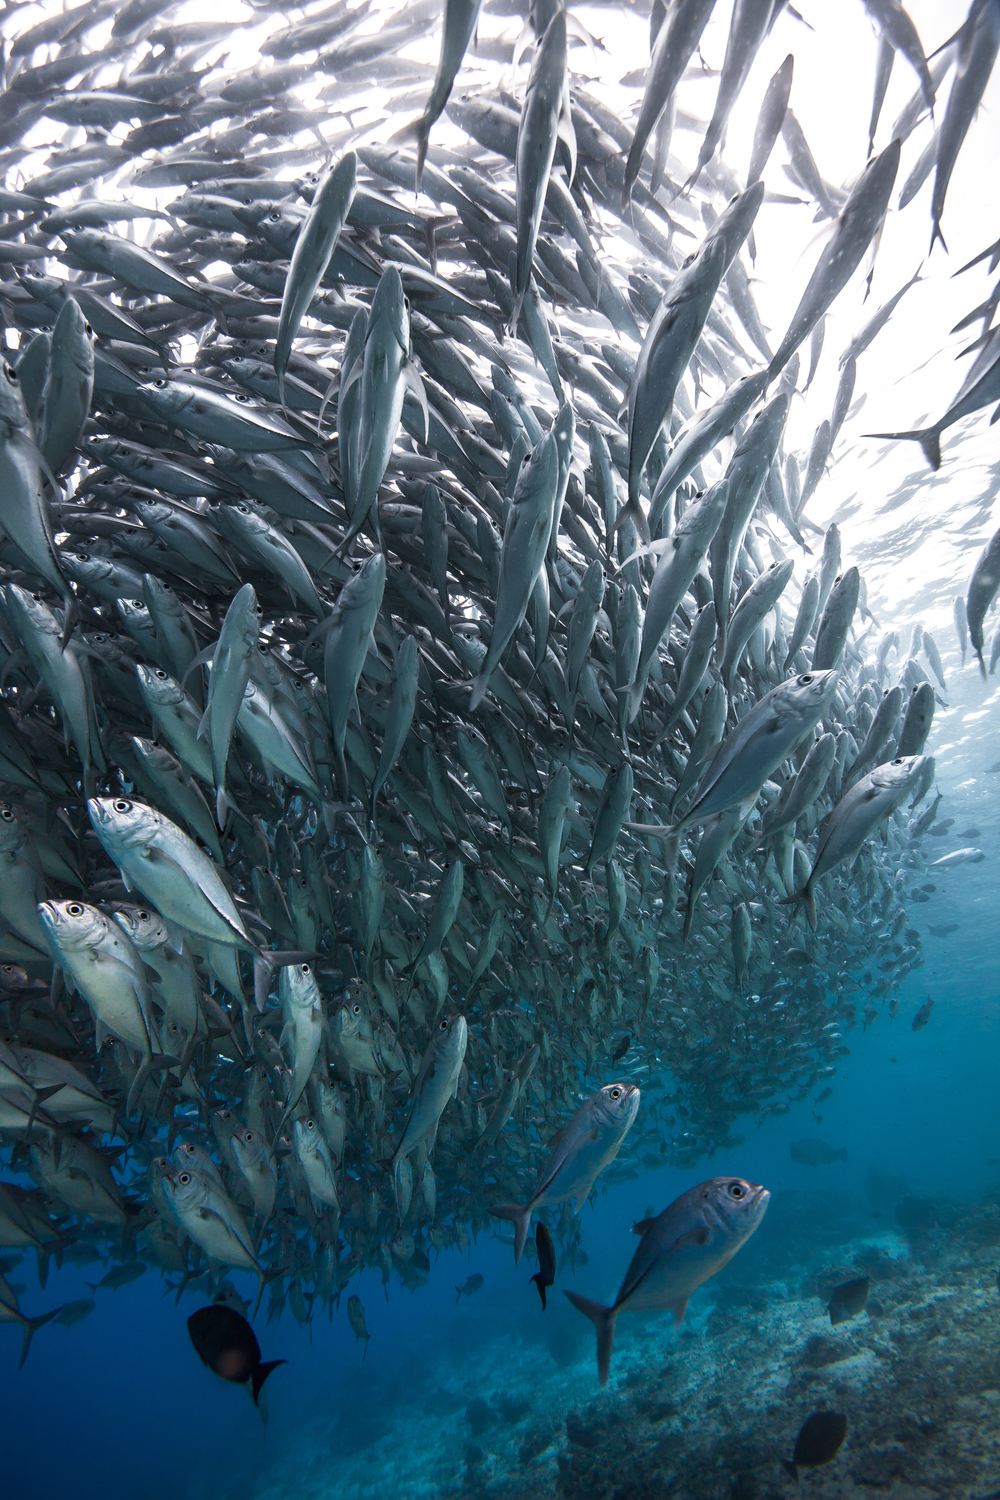 Jackfish in large numbers over shallow reef